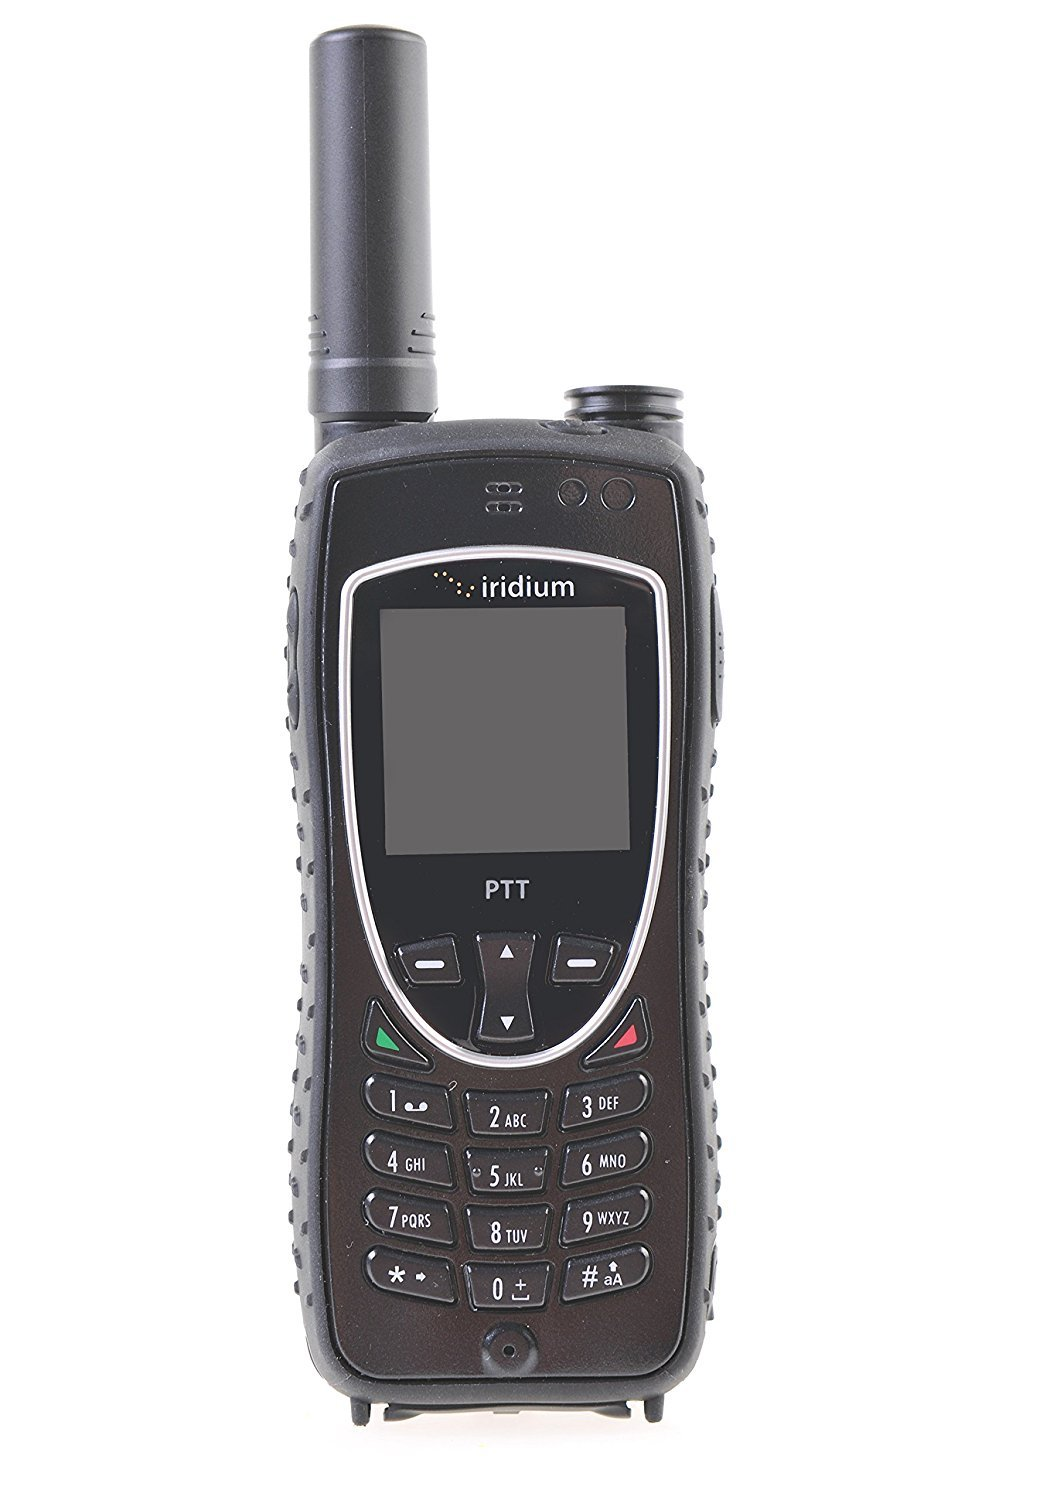 Iridium 9575 Extreme Satellite Phone with Prepaid SIM Card